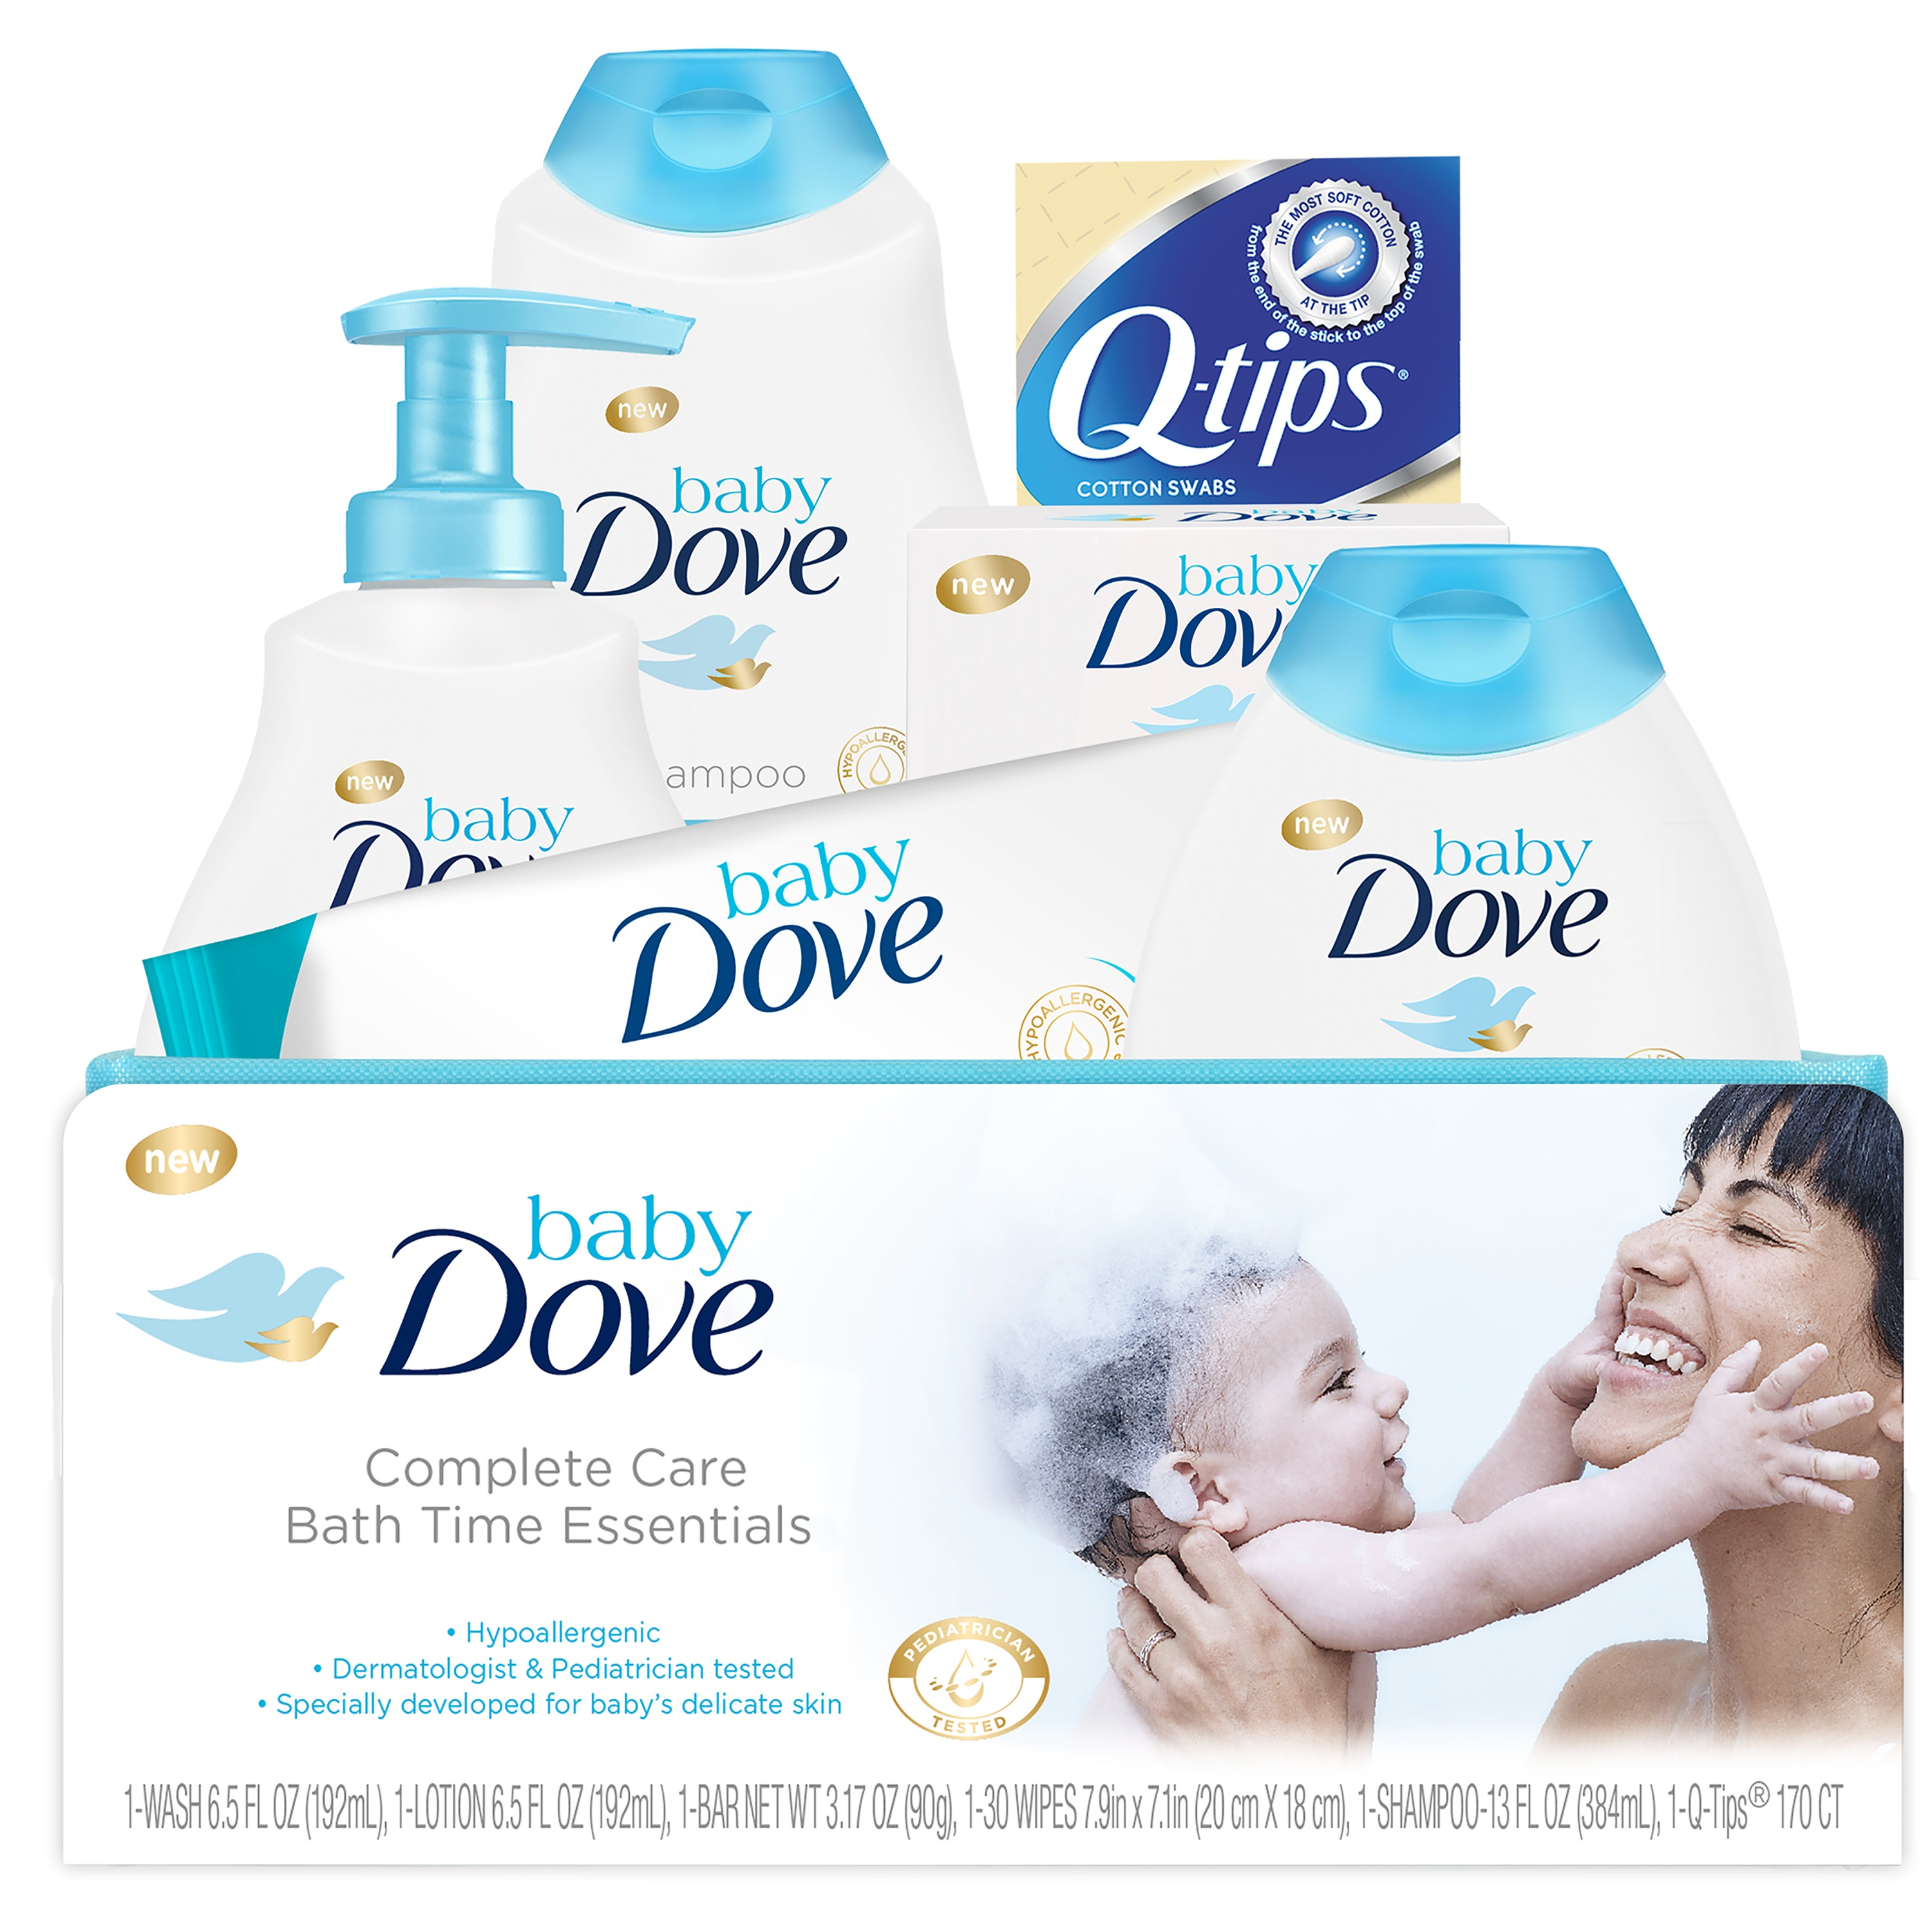 Baby Dove Complete Care Bath Time Essentials Gift Set 6 pc by Unilever